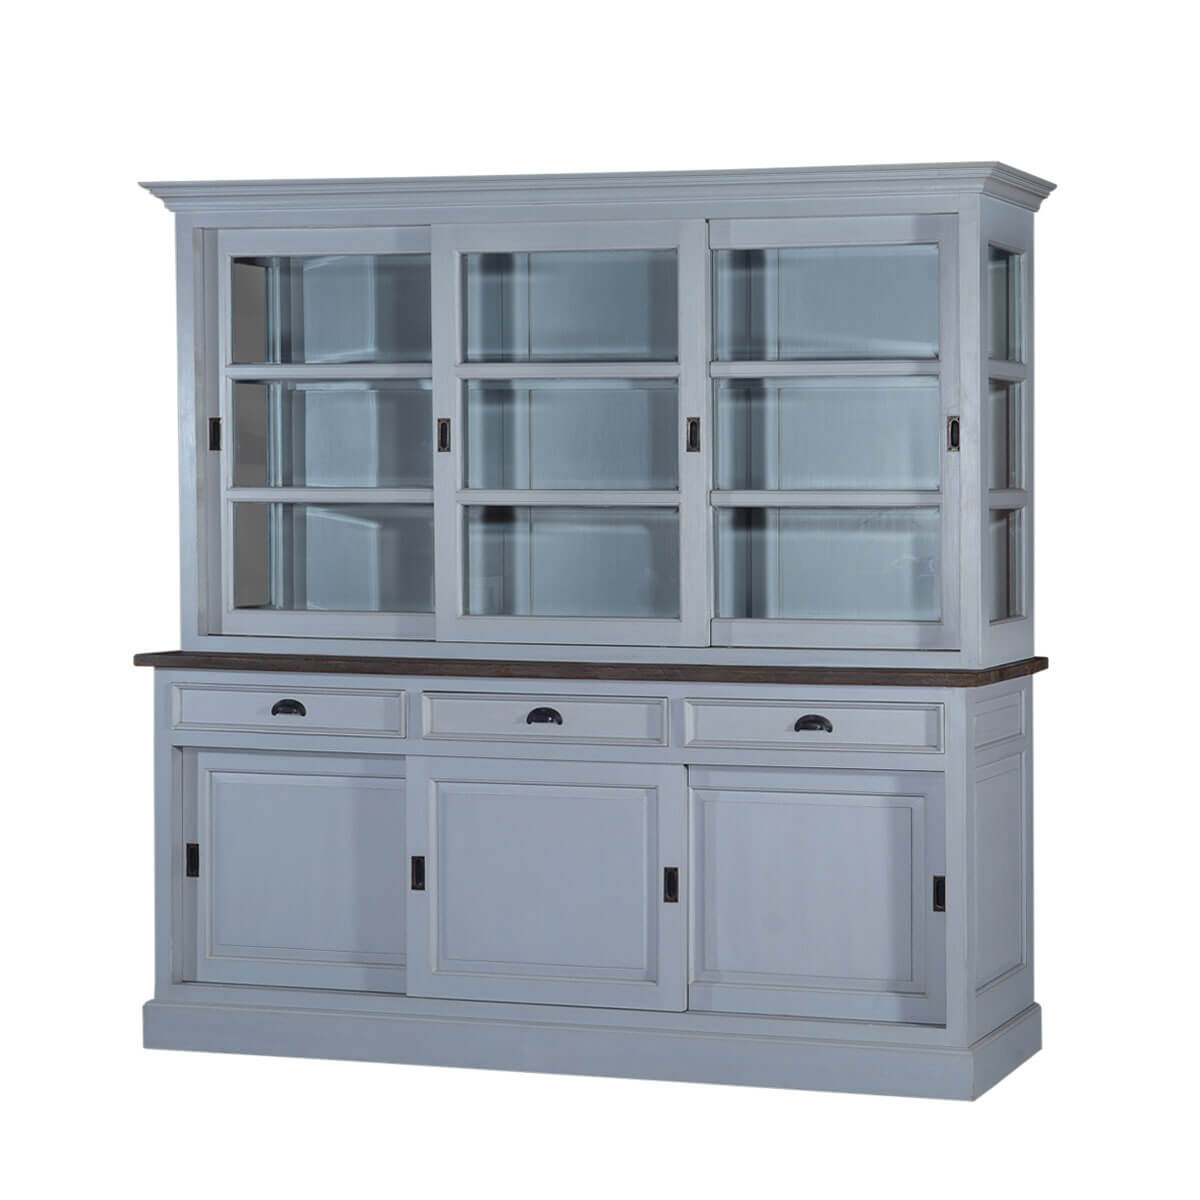 Chesterfield Teak U0026 Solid Wood Sliding Door 3 Drawer China Cabinet